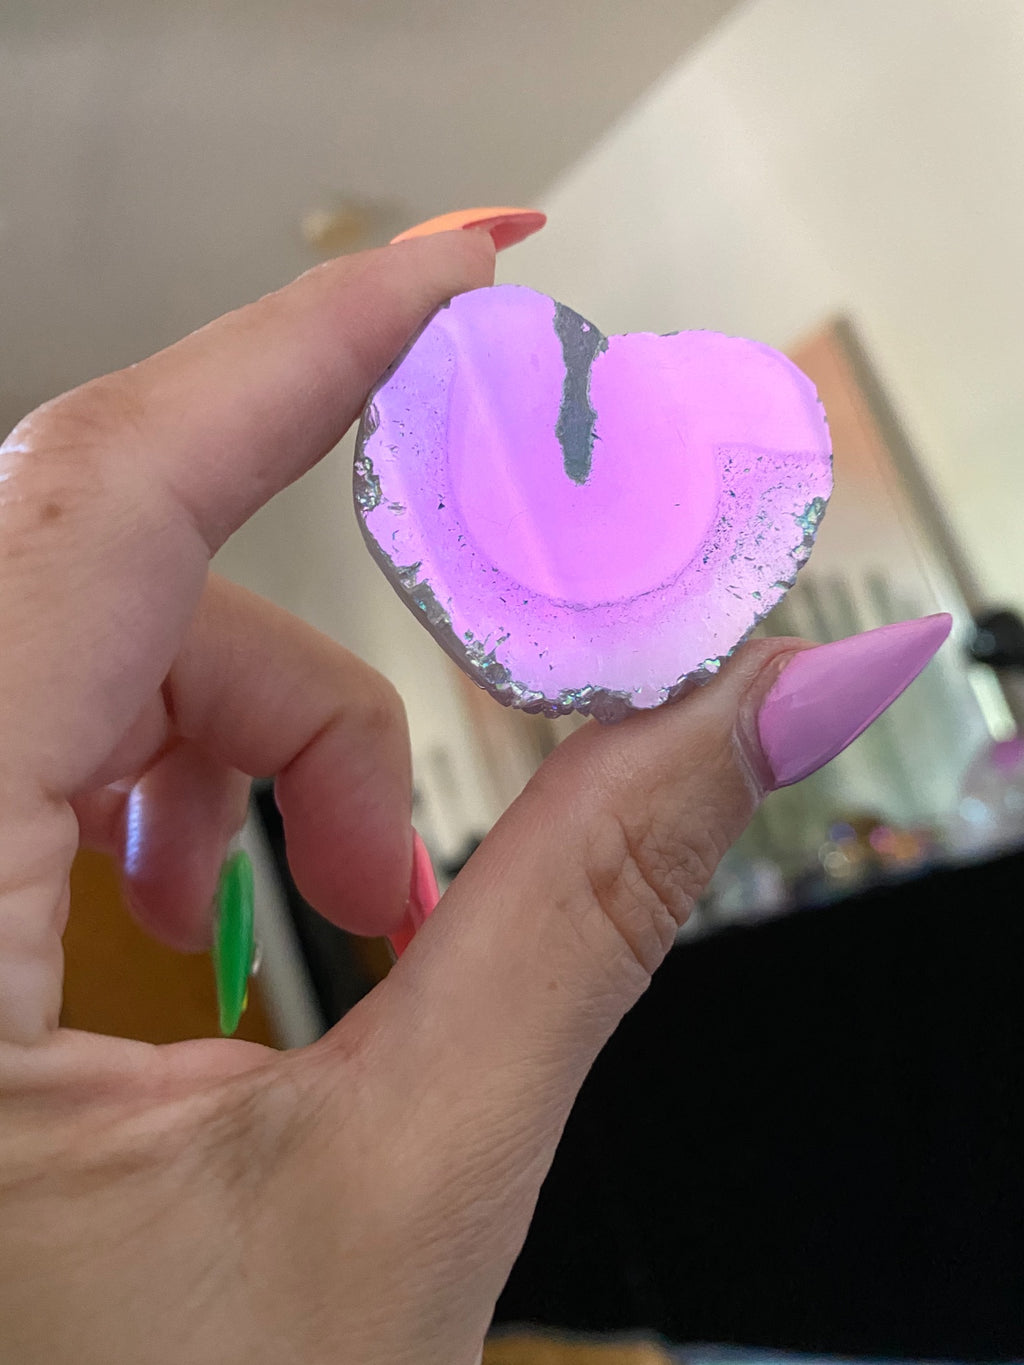 Angel aura amethyst medium heart slice 9